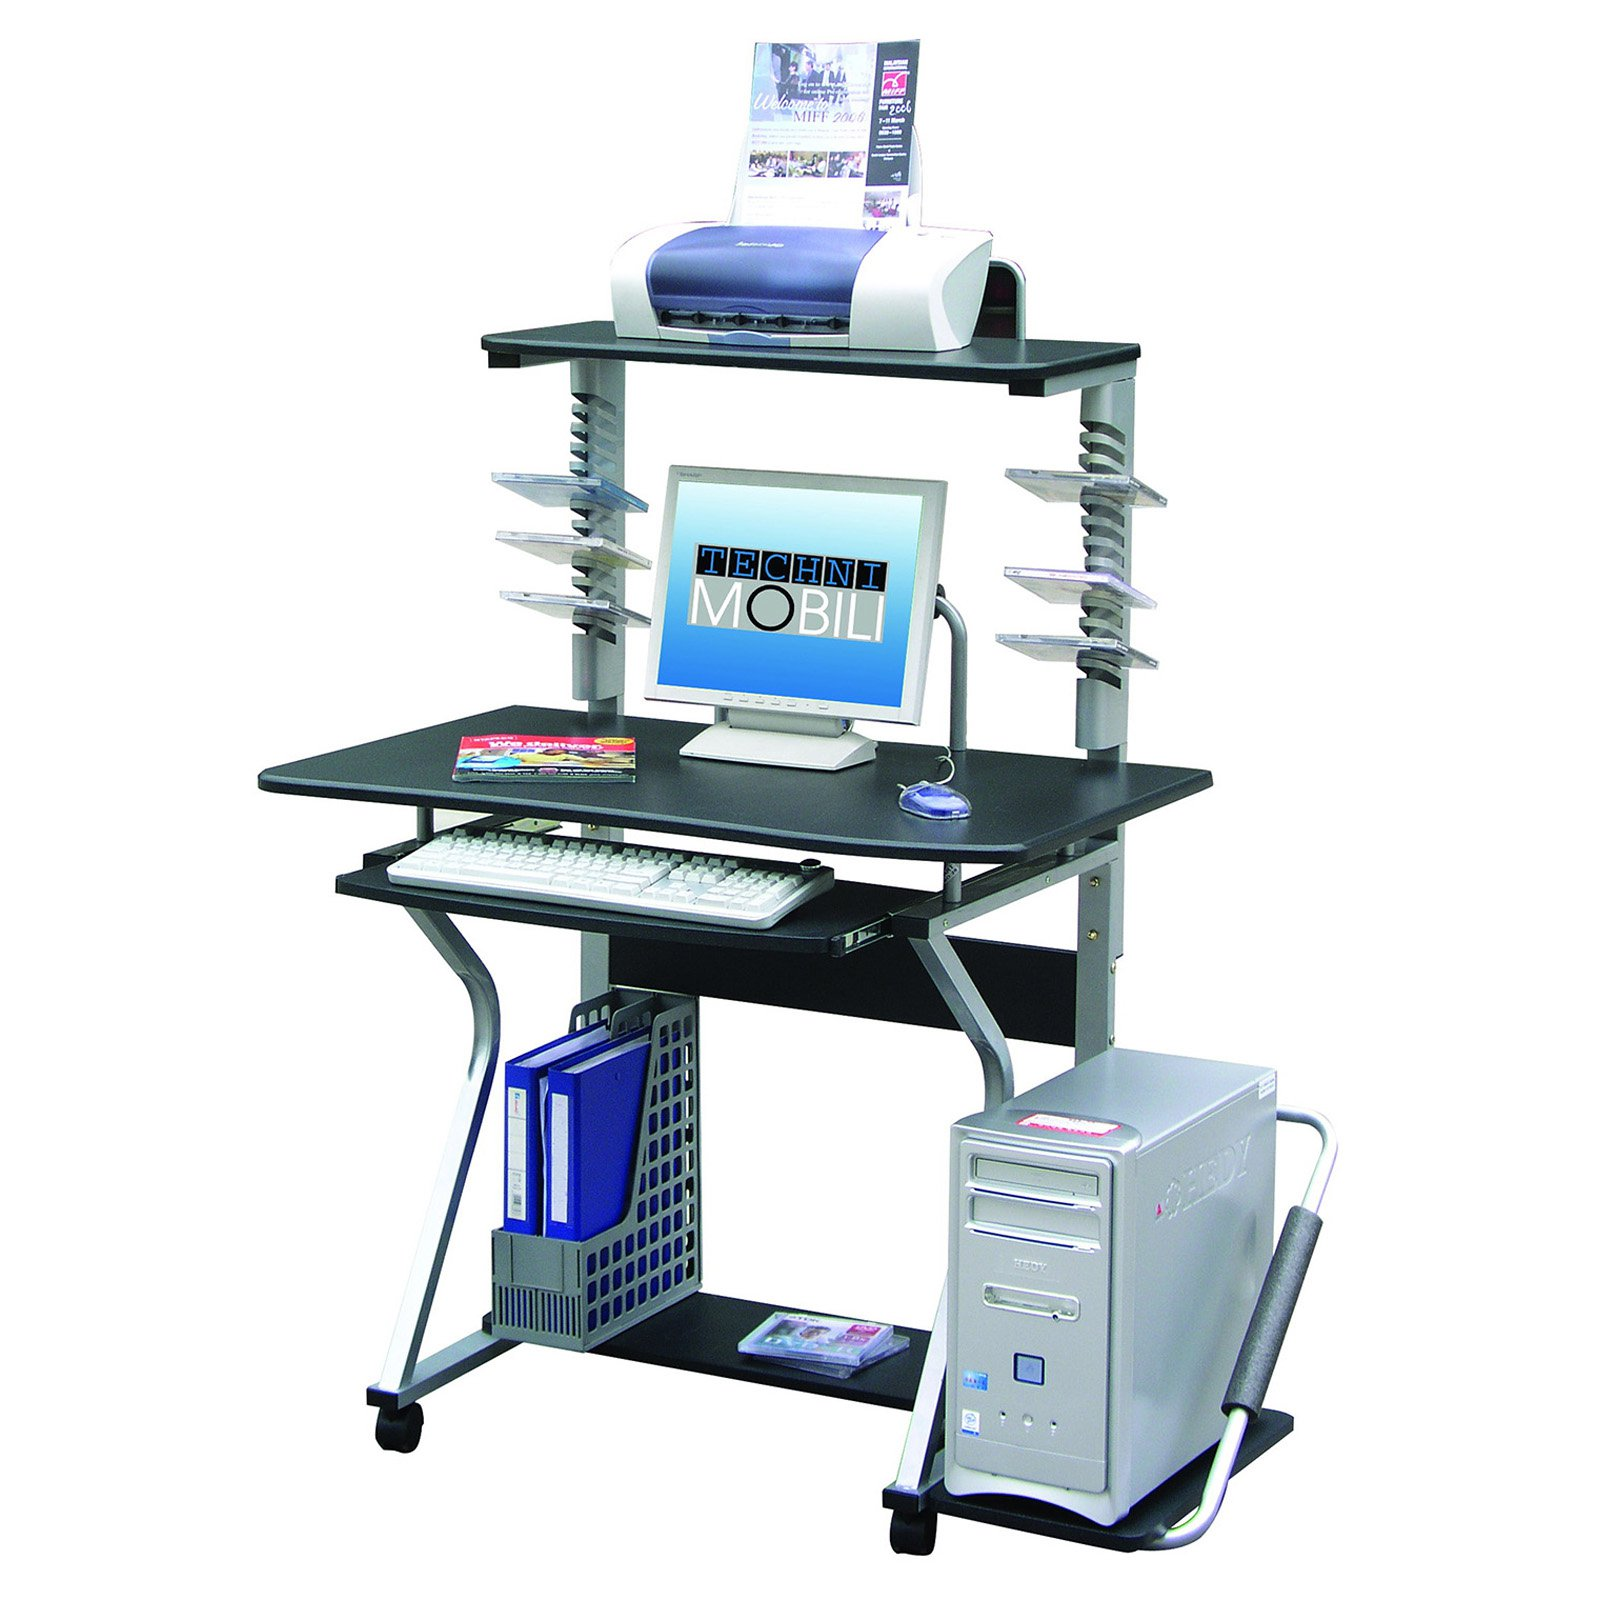 Mobile Desk Portable Desk Chair Laptop Table Bed With A